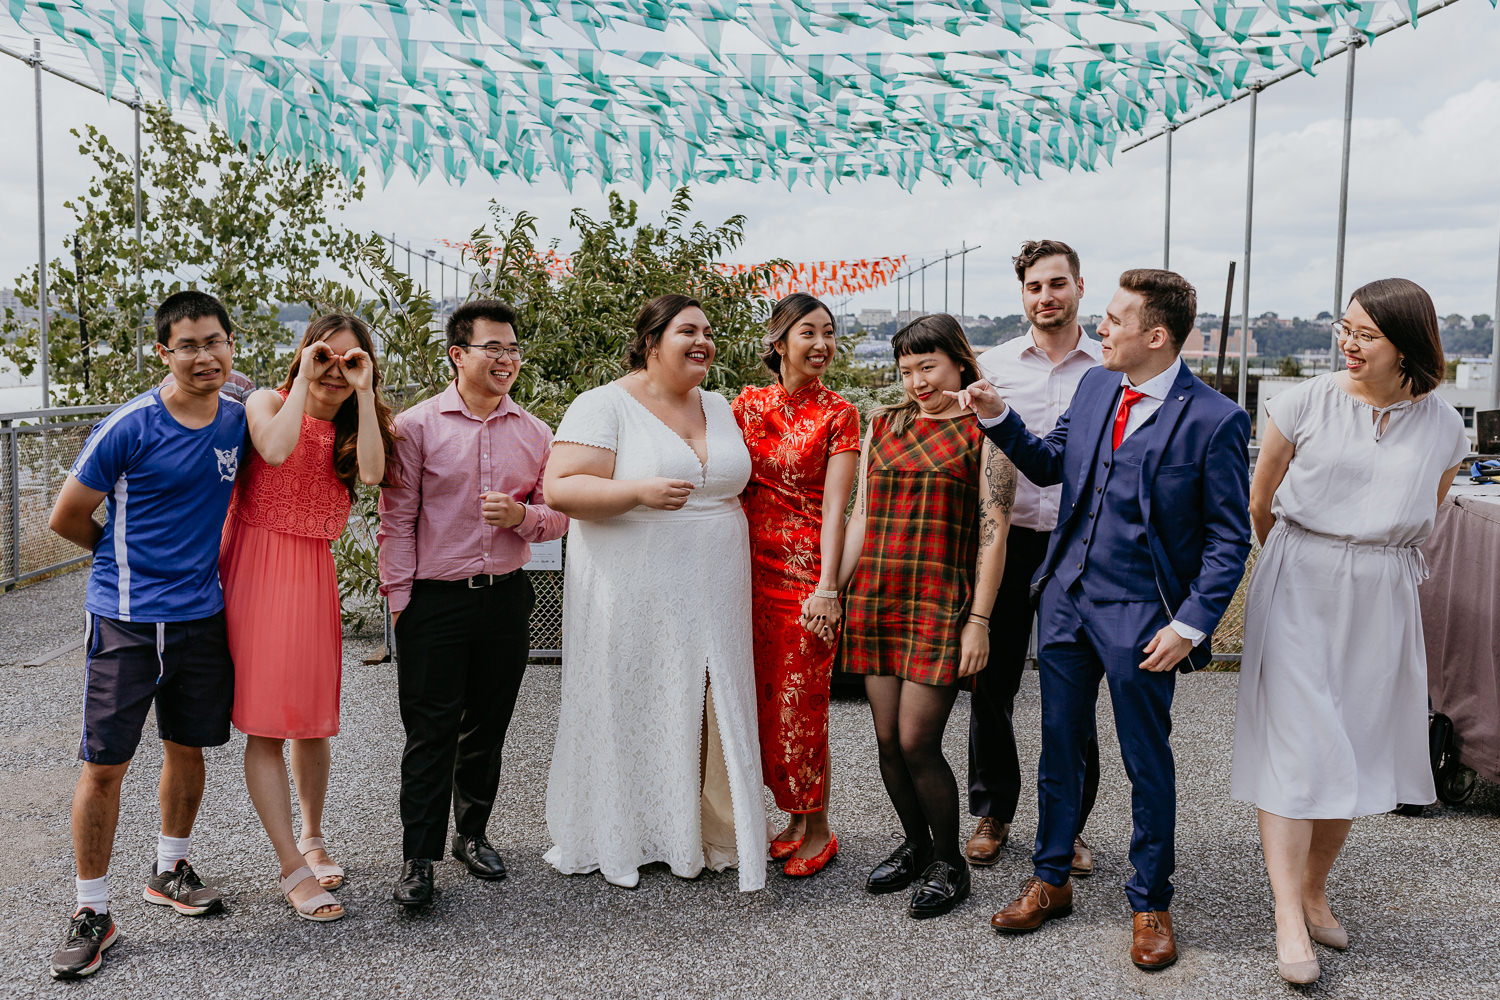 two brides surround by friends on both sides laughing at each other